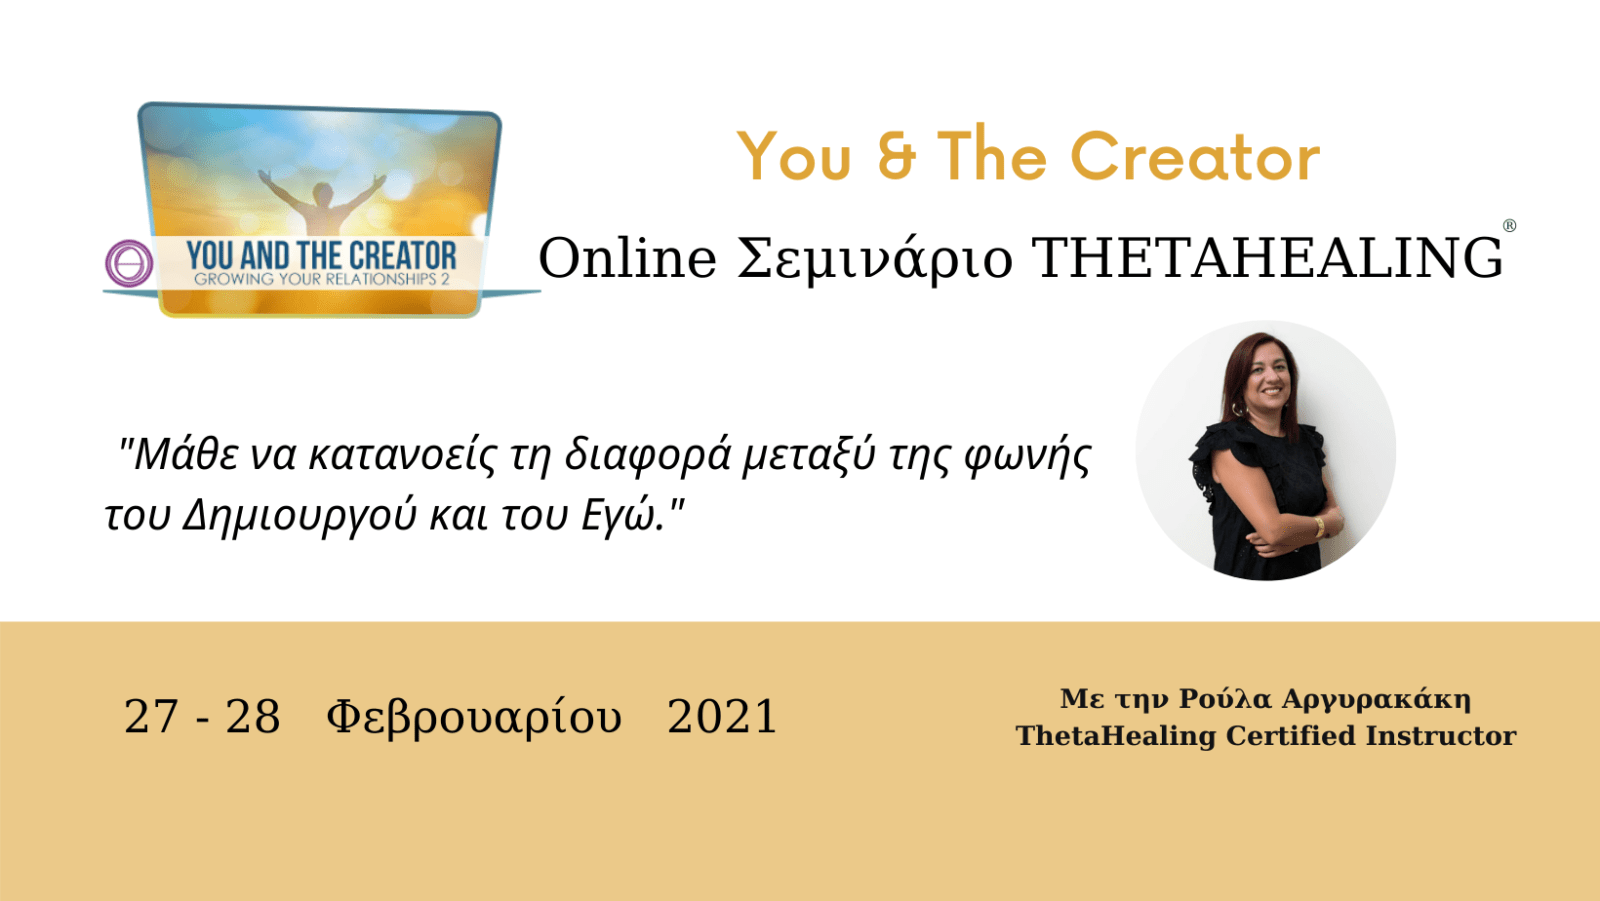 You and The Creator